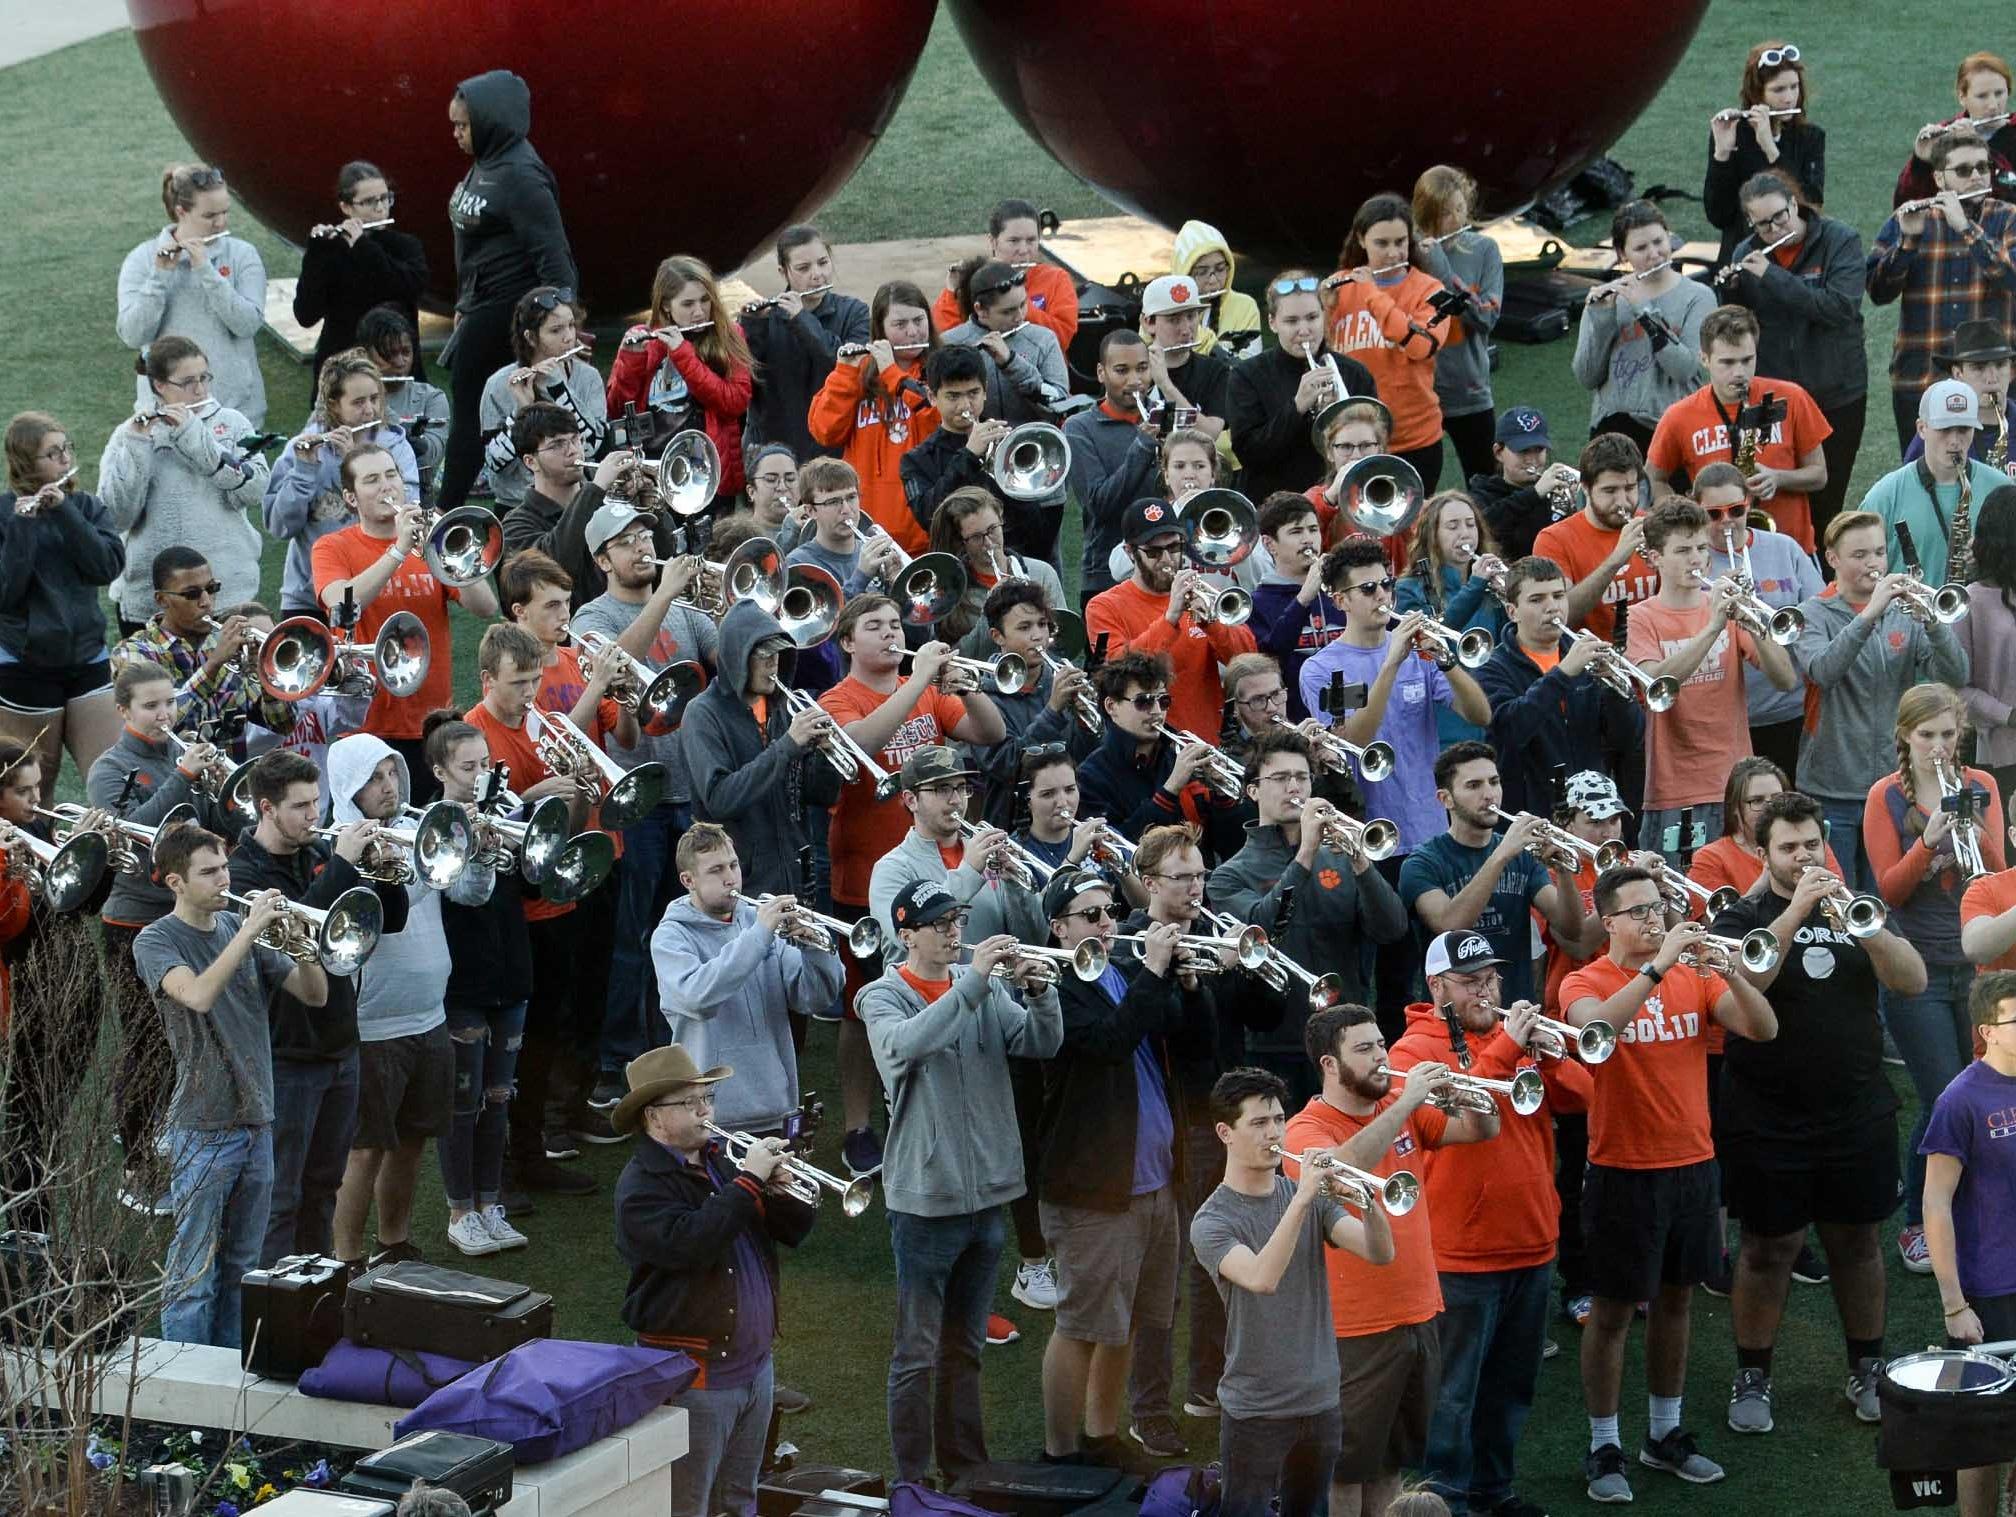 during Clemson Band practice outside the Omni in Dallas December 27, 2018.